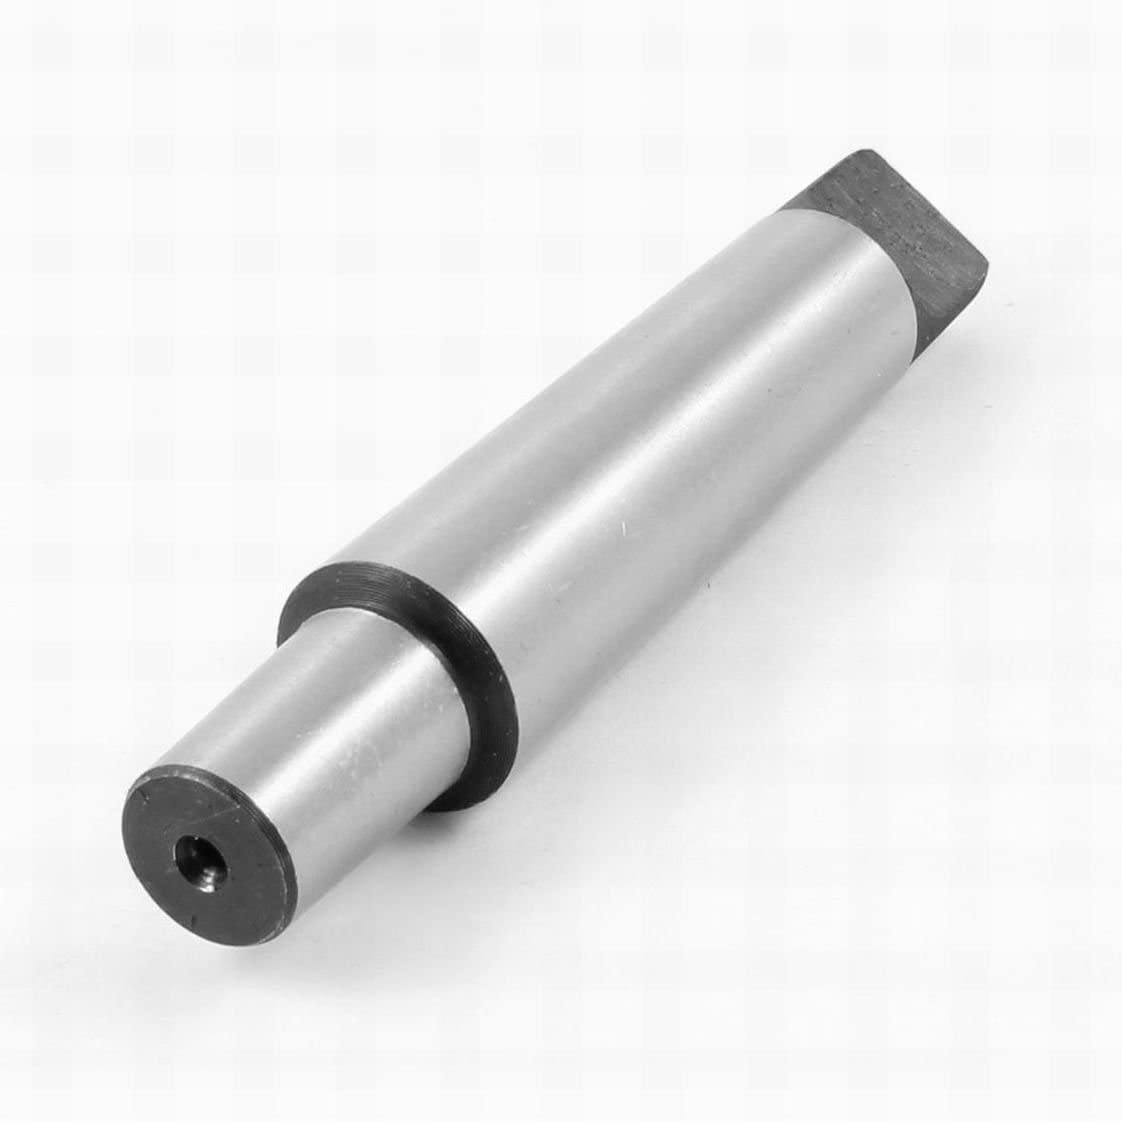 Houseuse 3mm-16mm MT3 Morse Taper Adapter Tang Drill Chuck Arbor 120mm Long for Tailstock